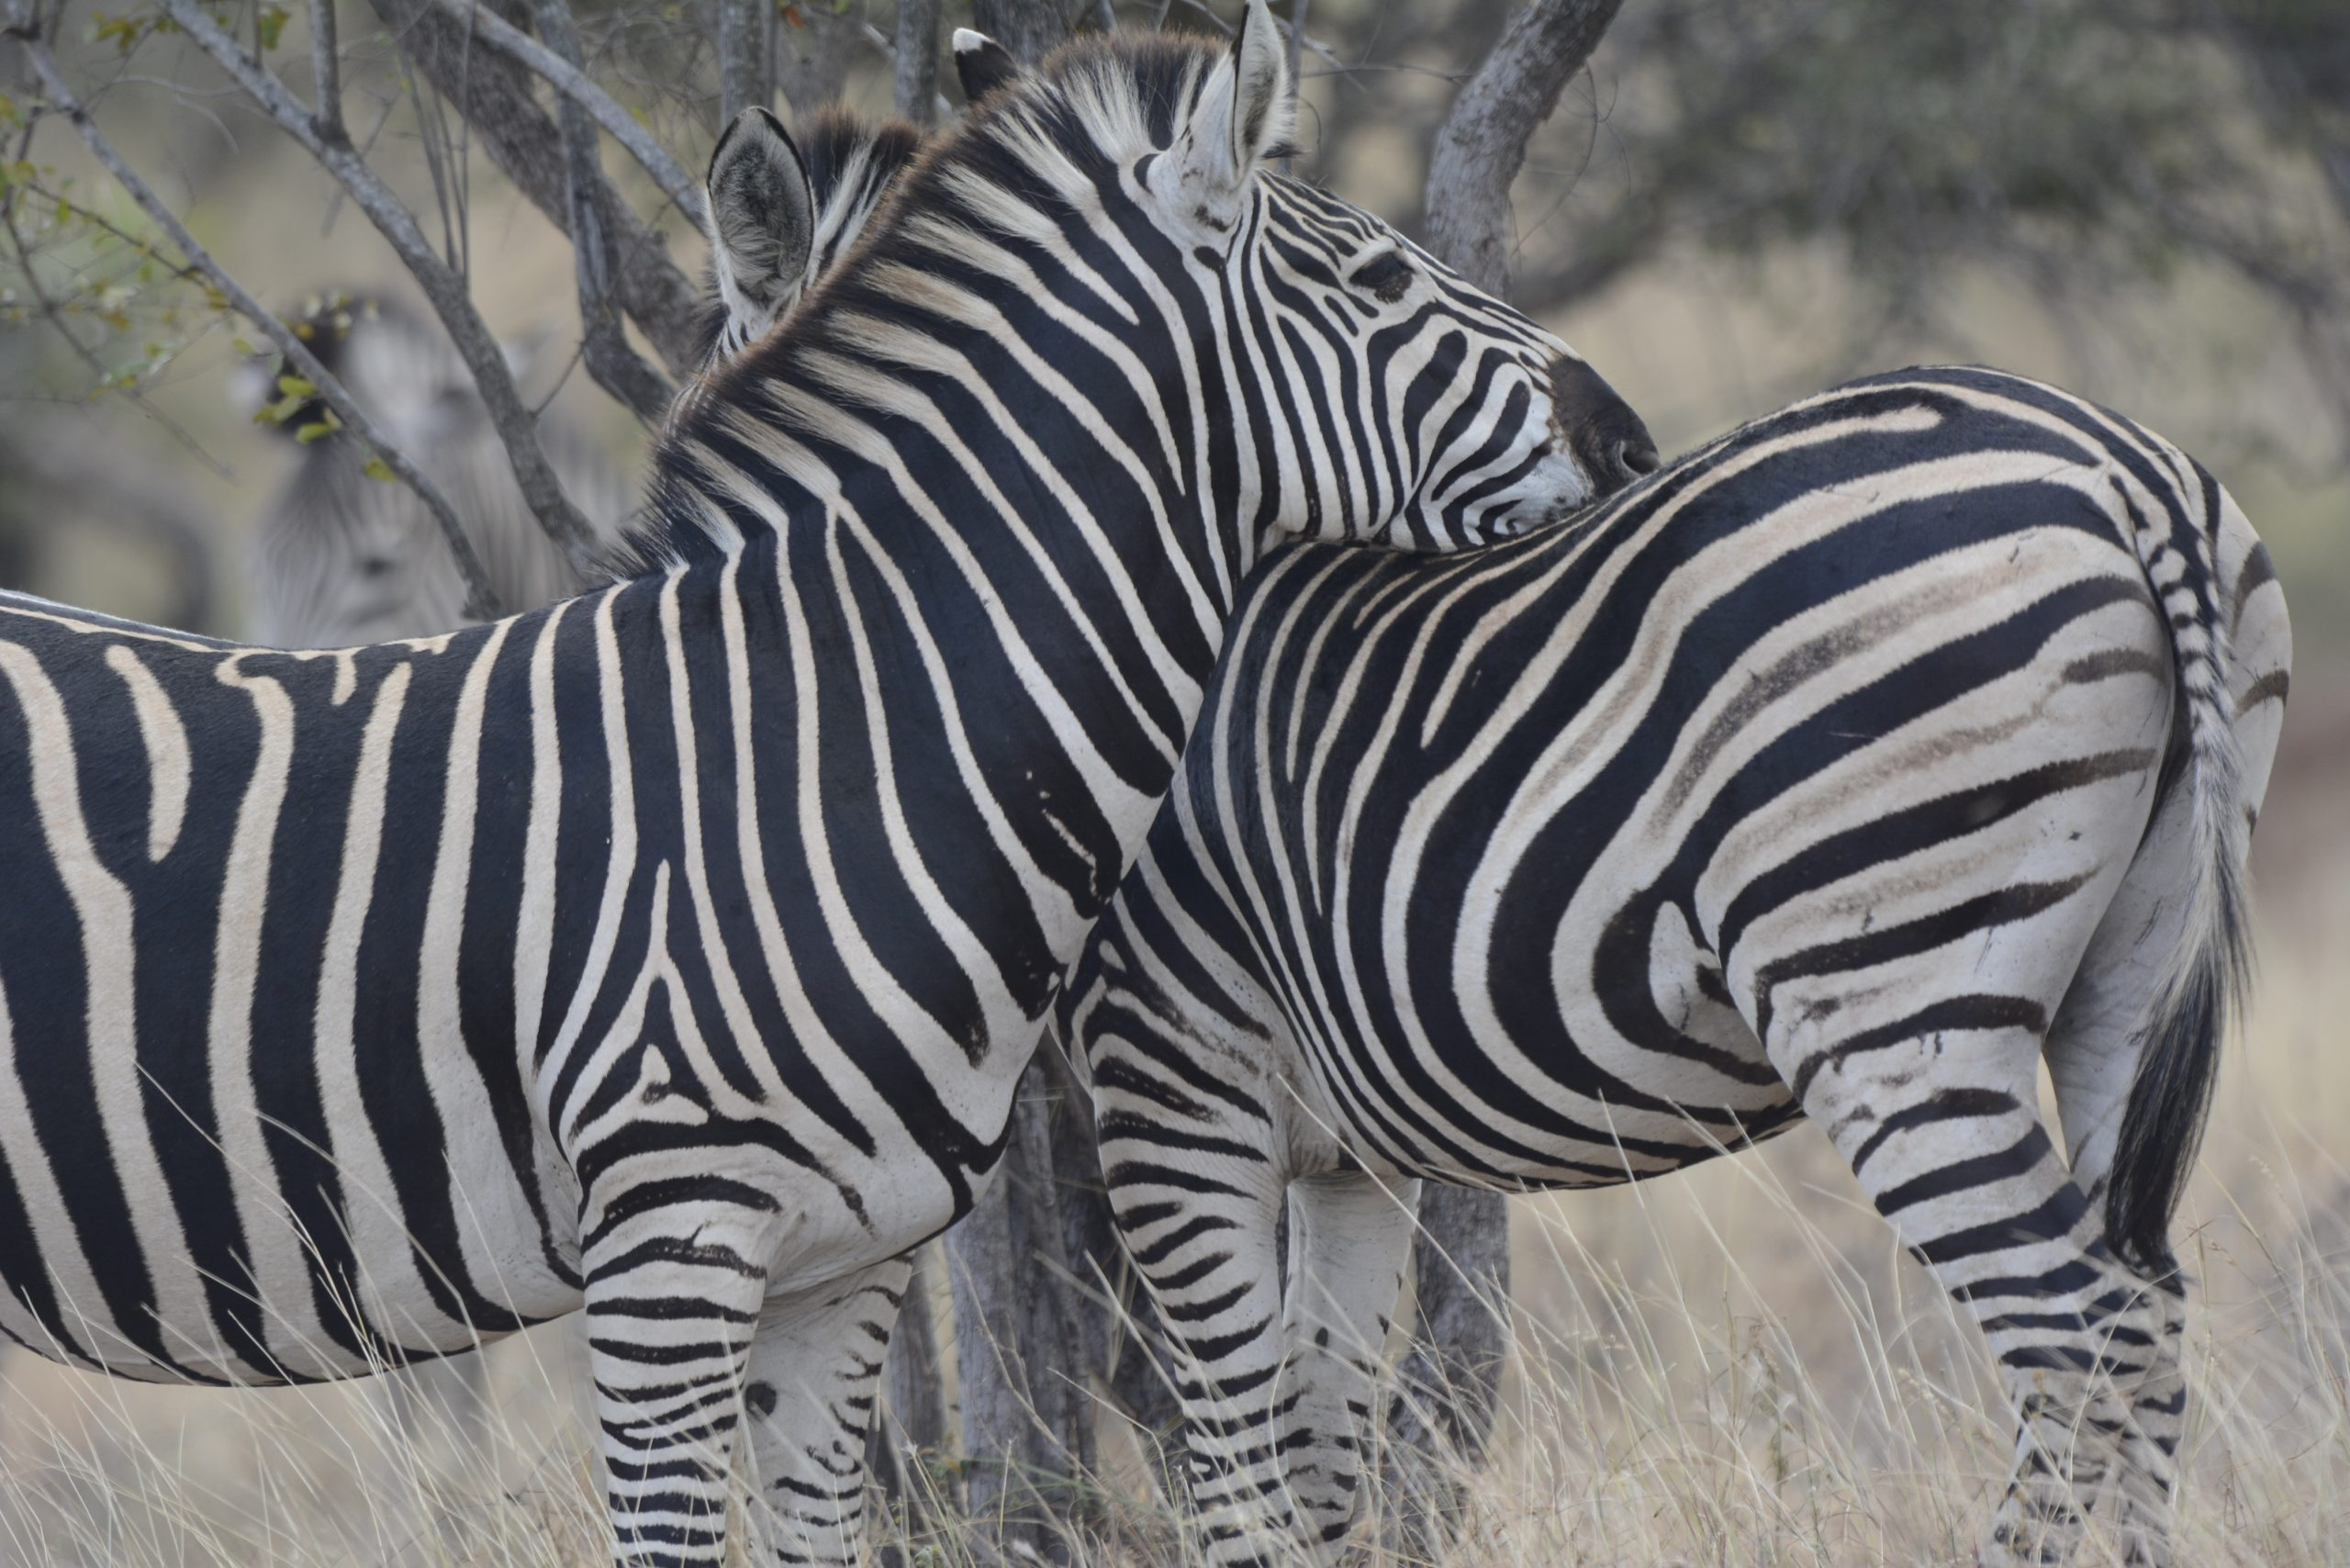 two zebras together